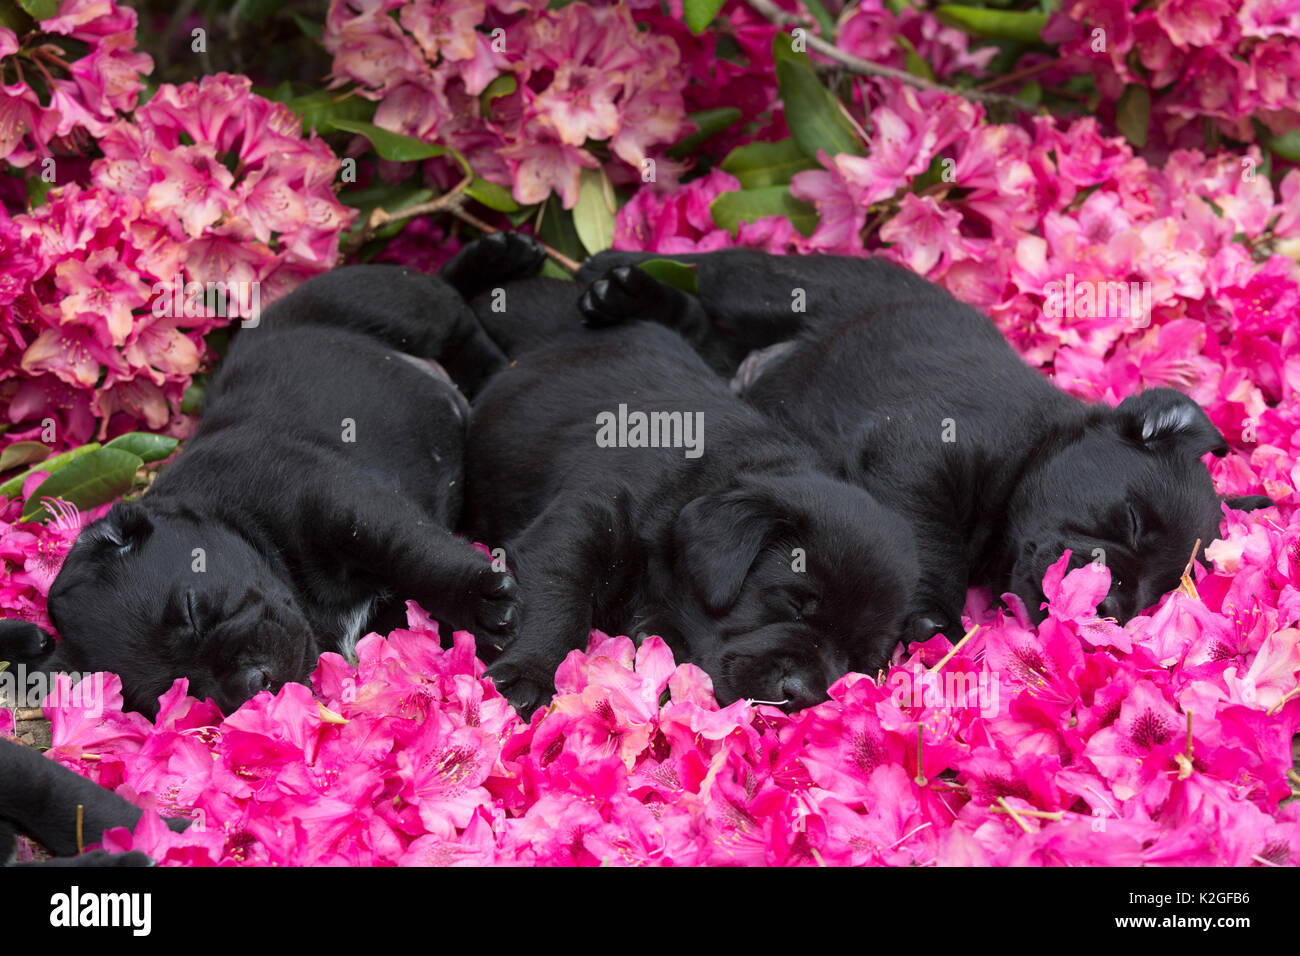 Three black labrador retriever pups, age five weeks, sleeping in rhododendron flowers, USA. - Stock Image